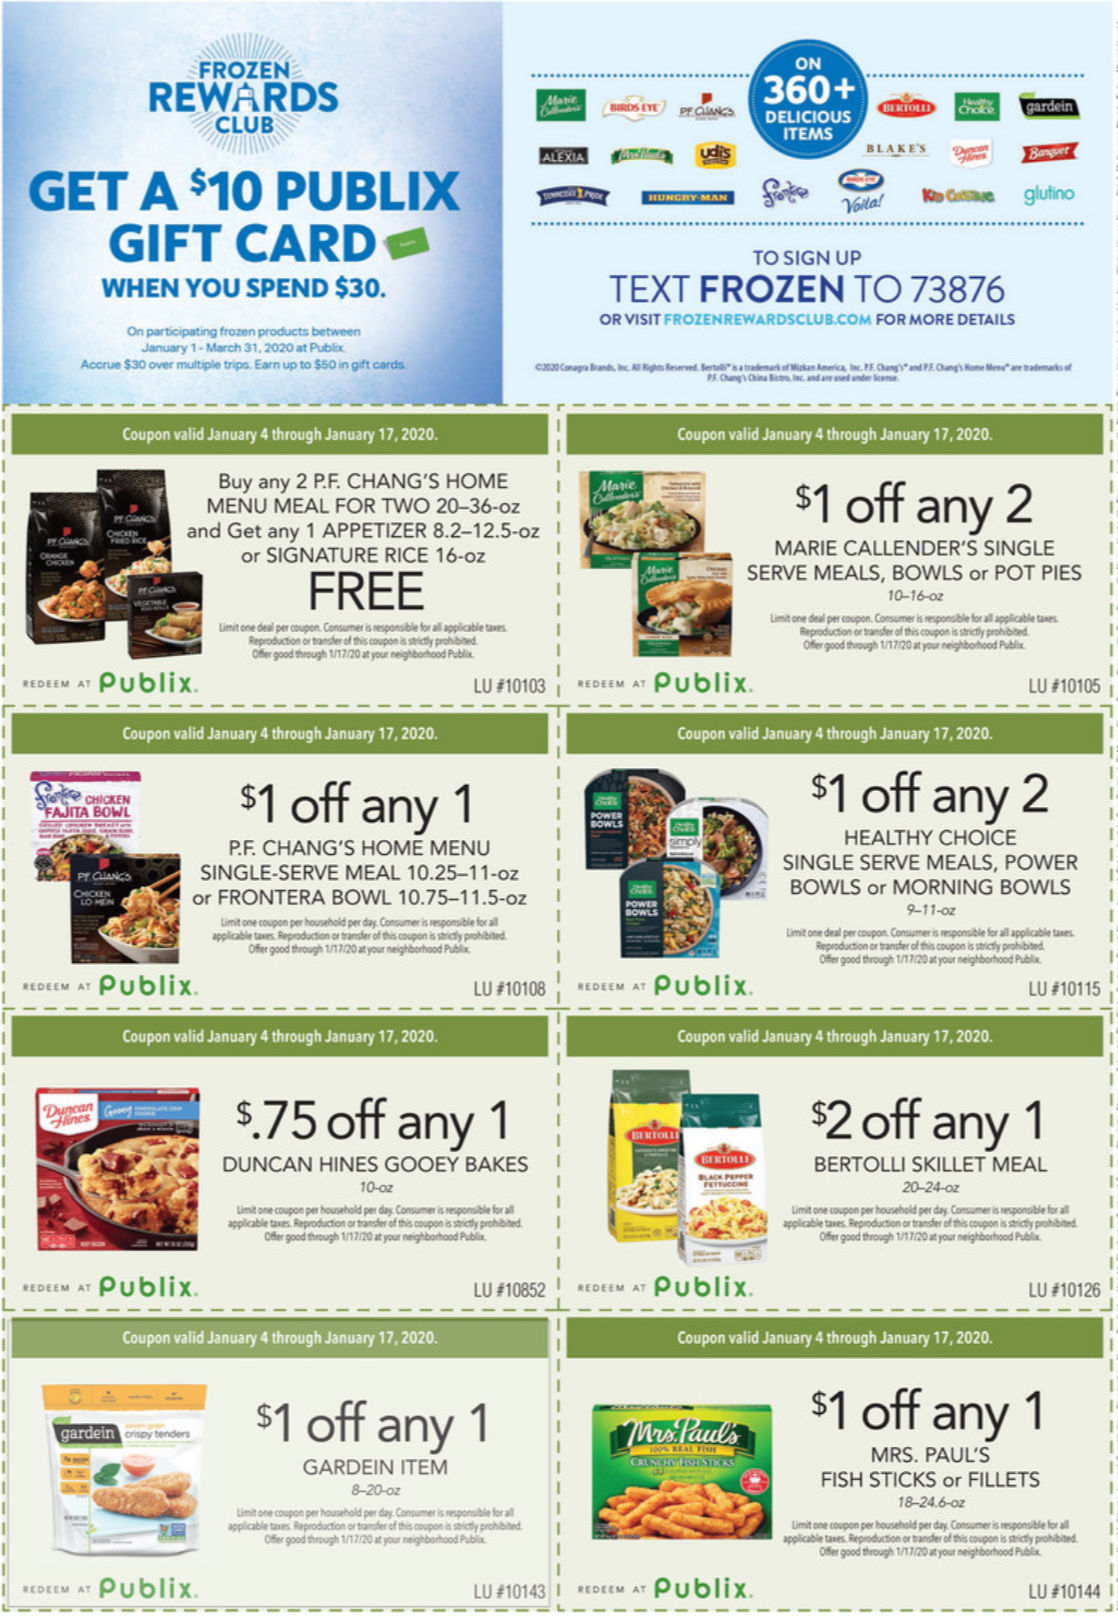 It's Time To Earn - Get A $10 Publix Gift Card When You Spend $30 on I Heart Publix